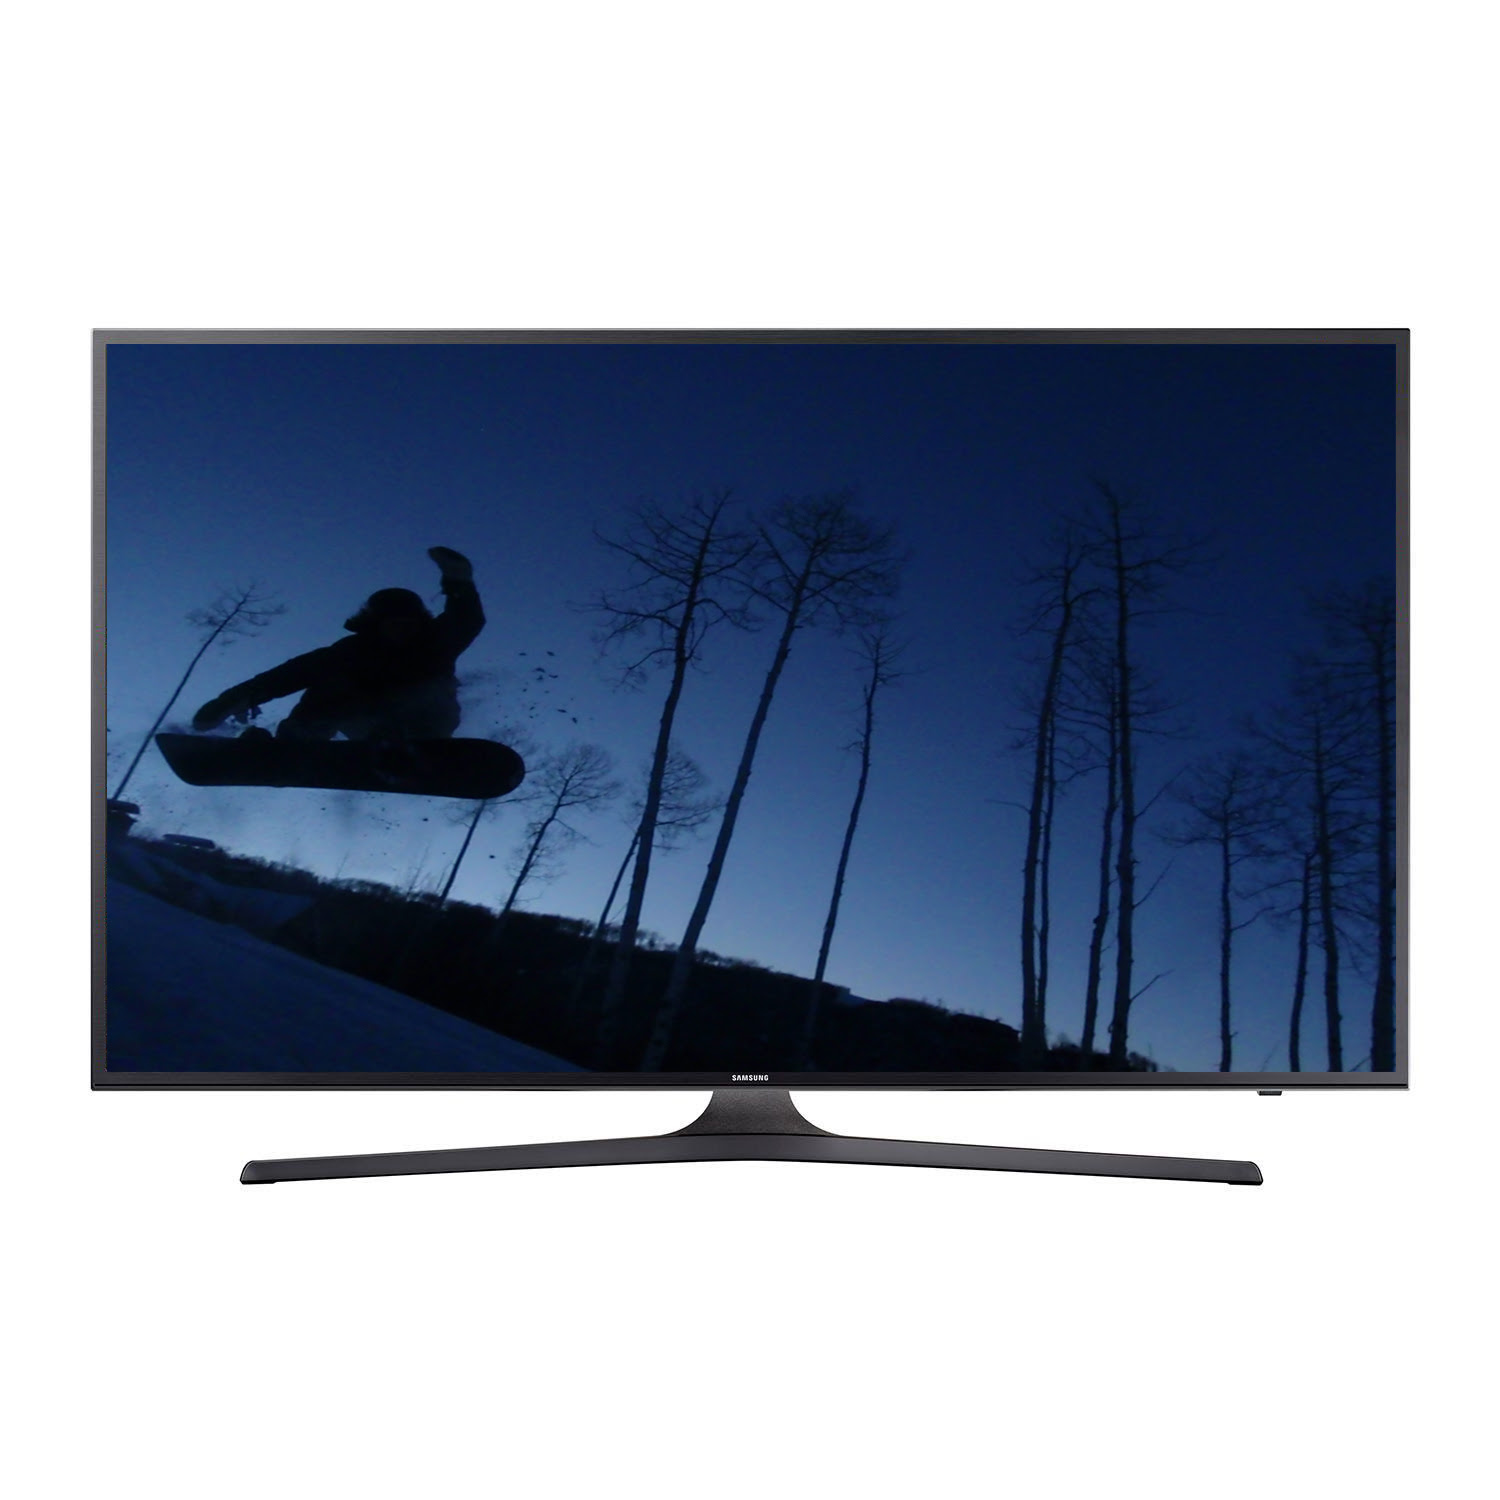 Refurbished Samsung 55. 4K Ultra Hd Smart Led Hdtv W\/ Wifi-UN55KU630DFXZA